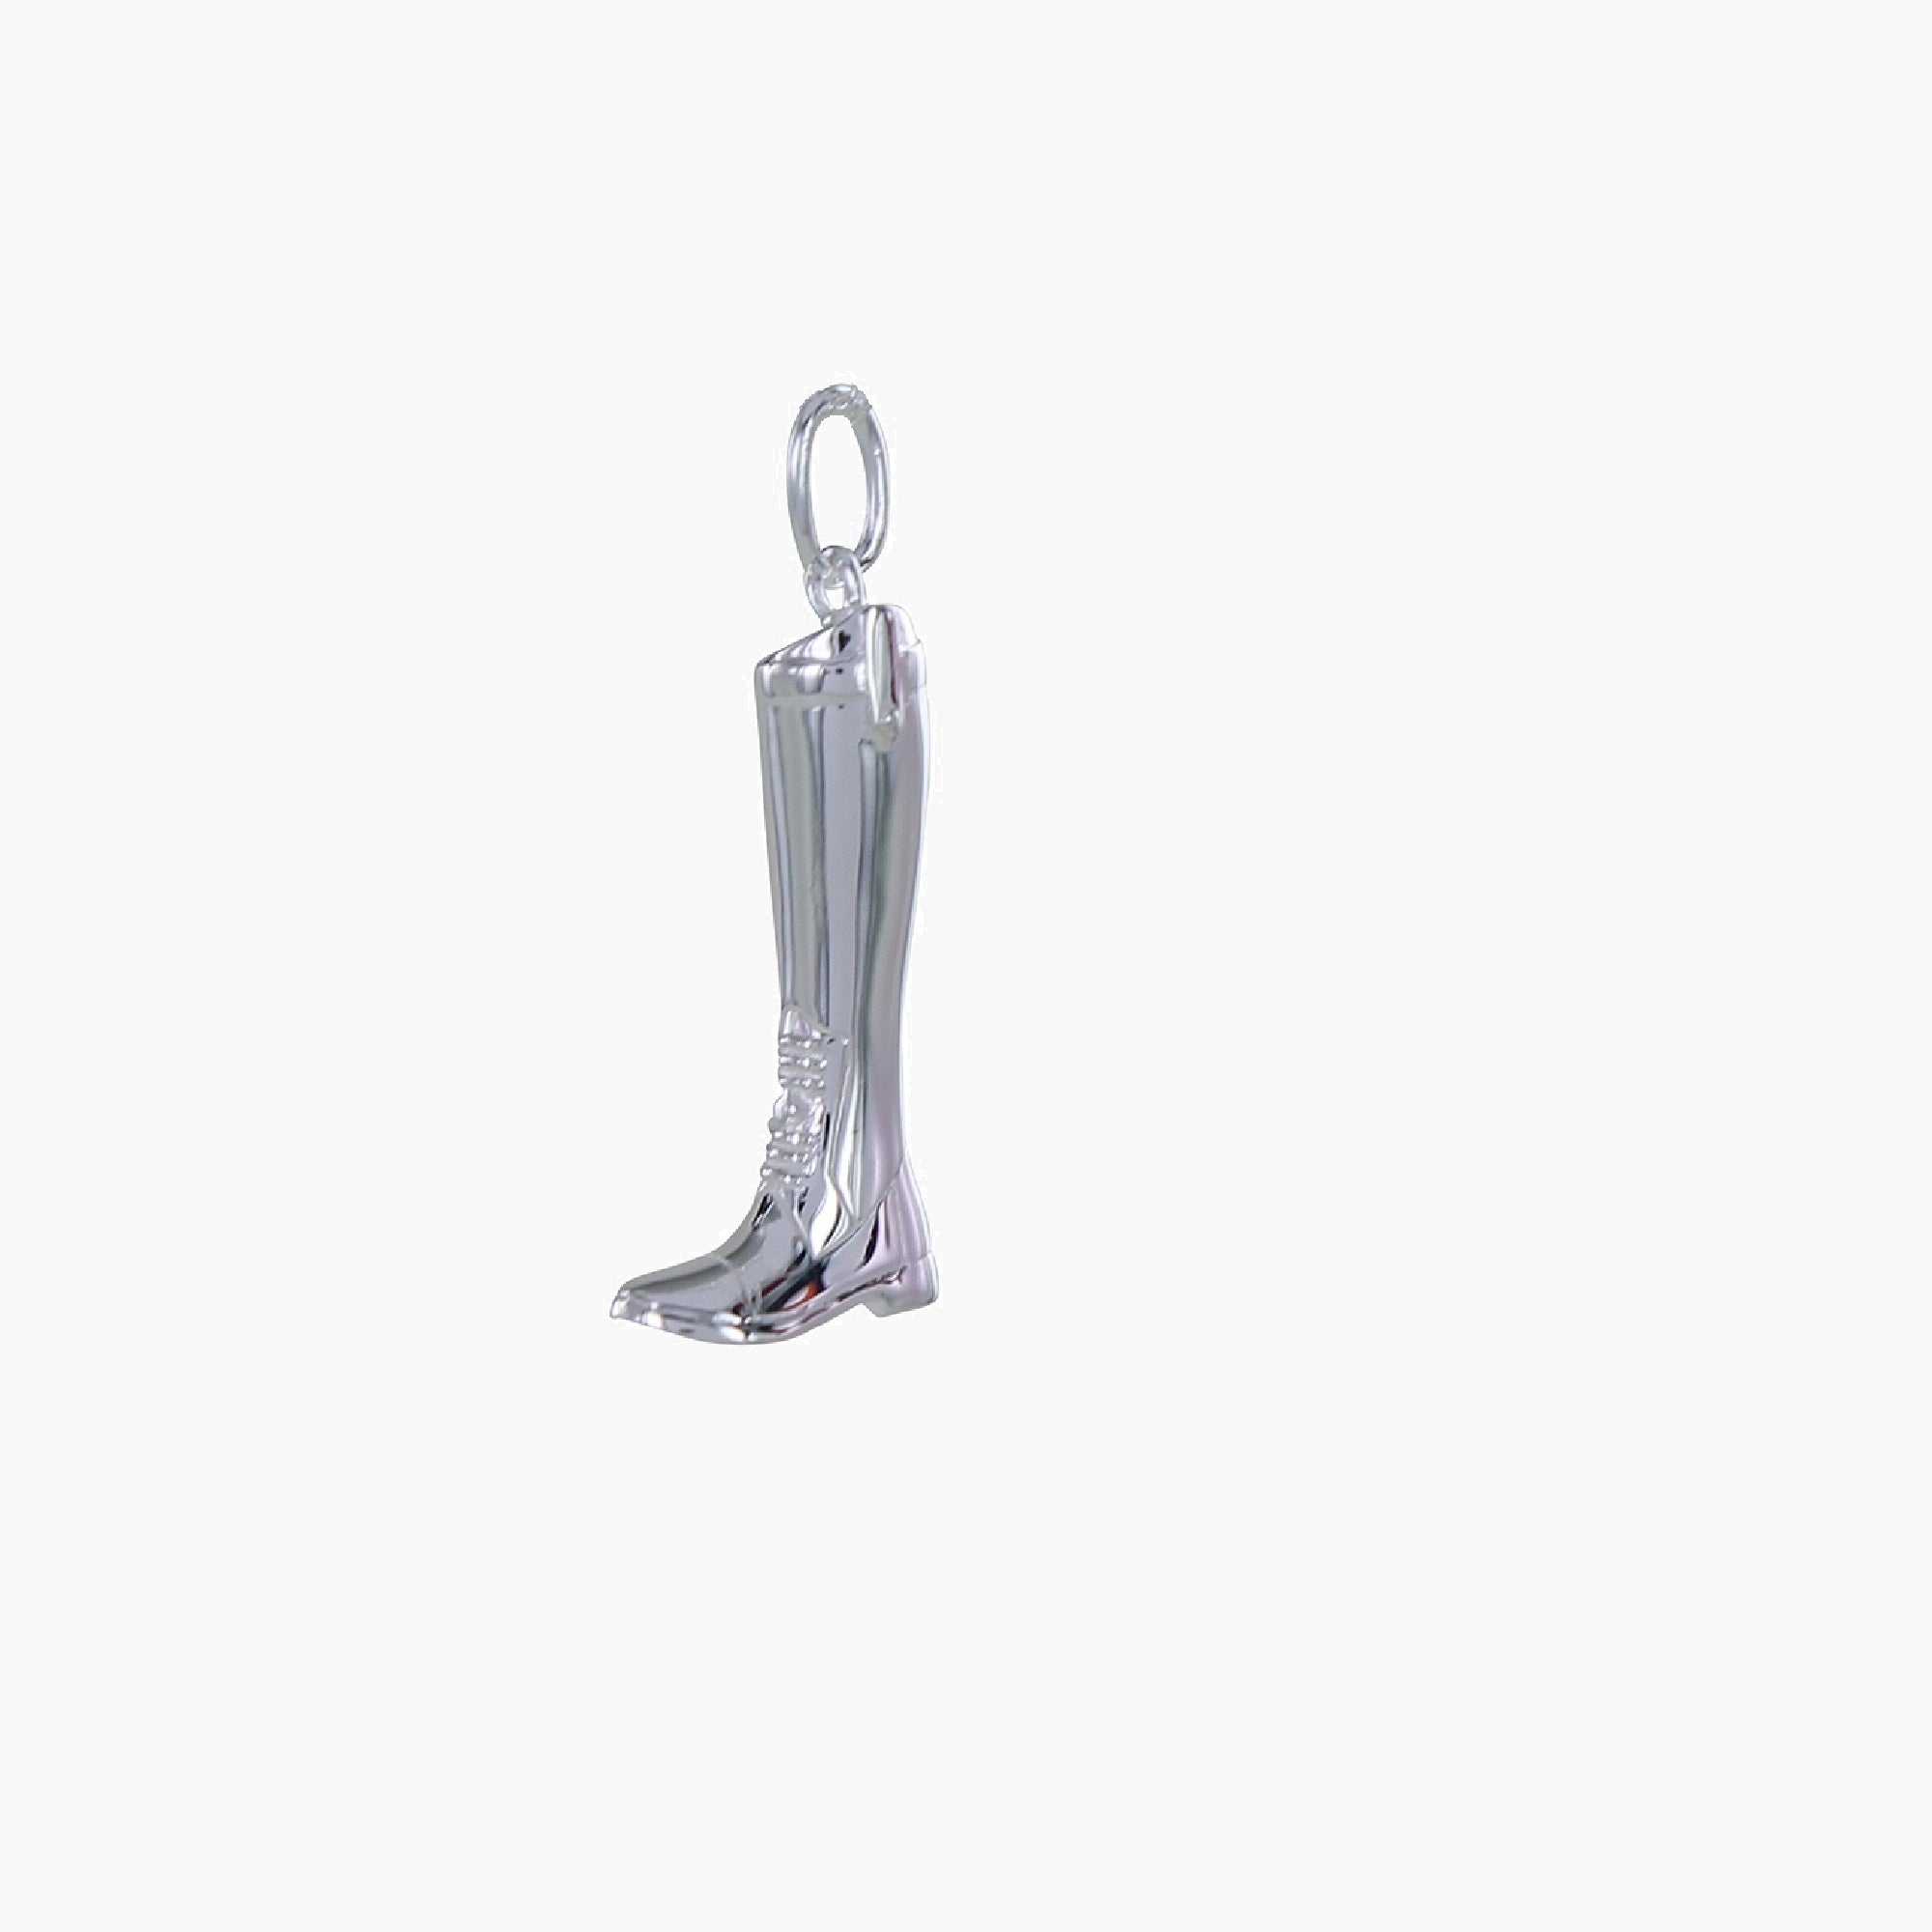 Large Sterling Silver Riding Boot Charm